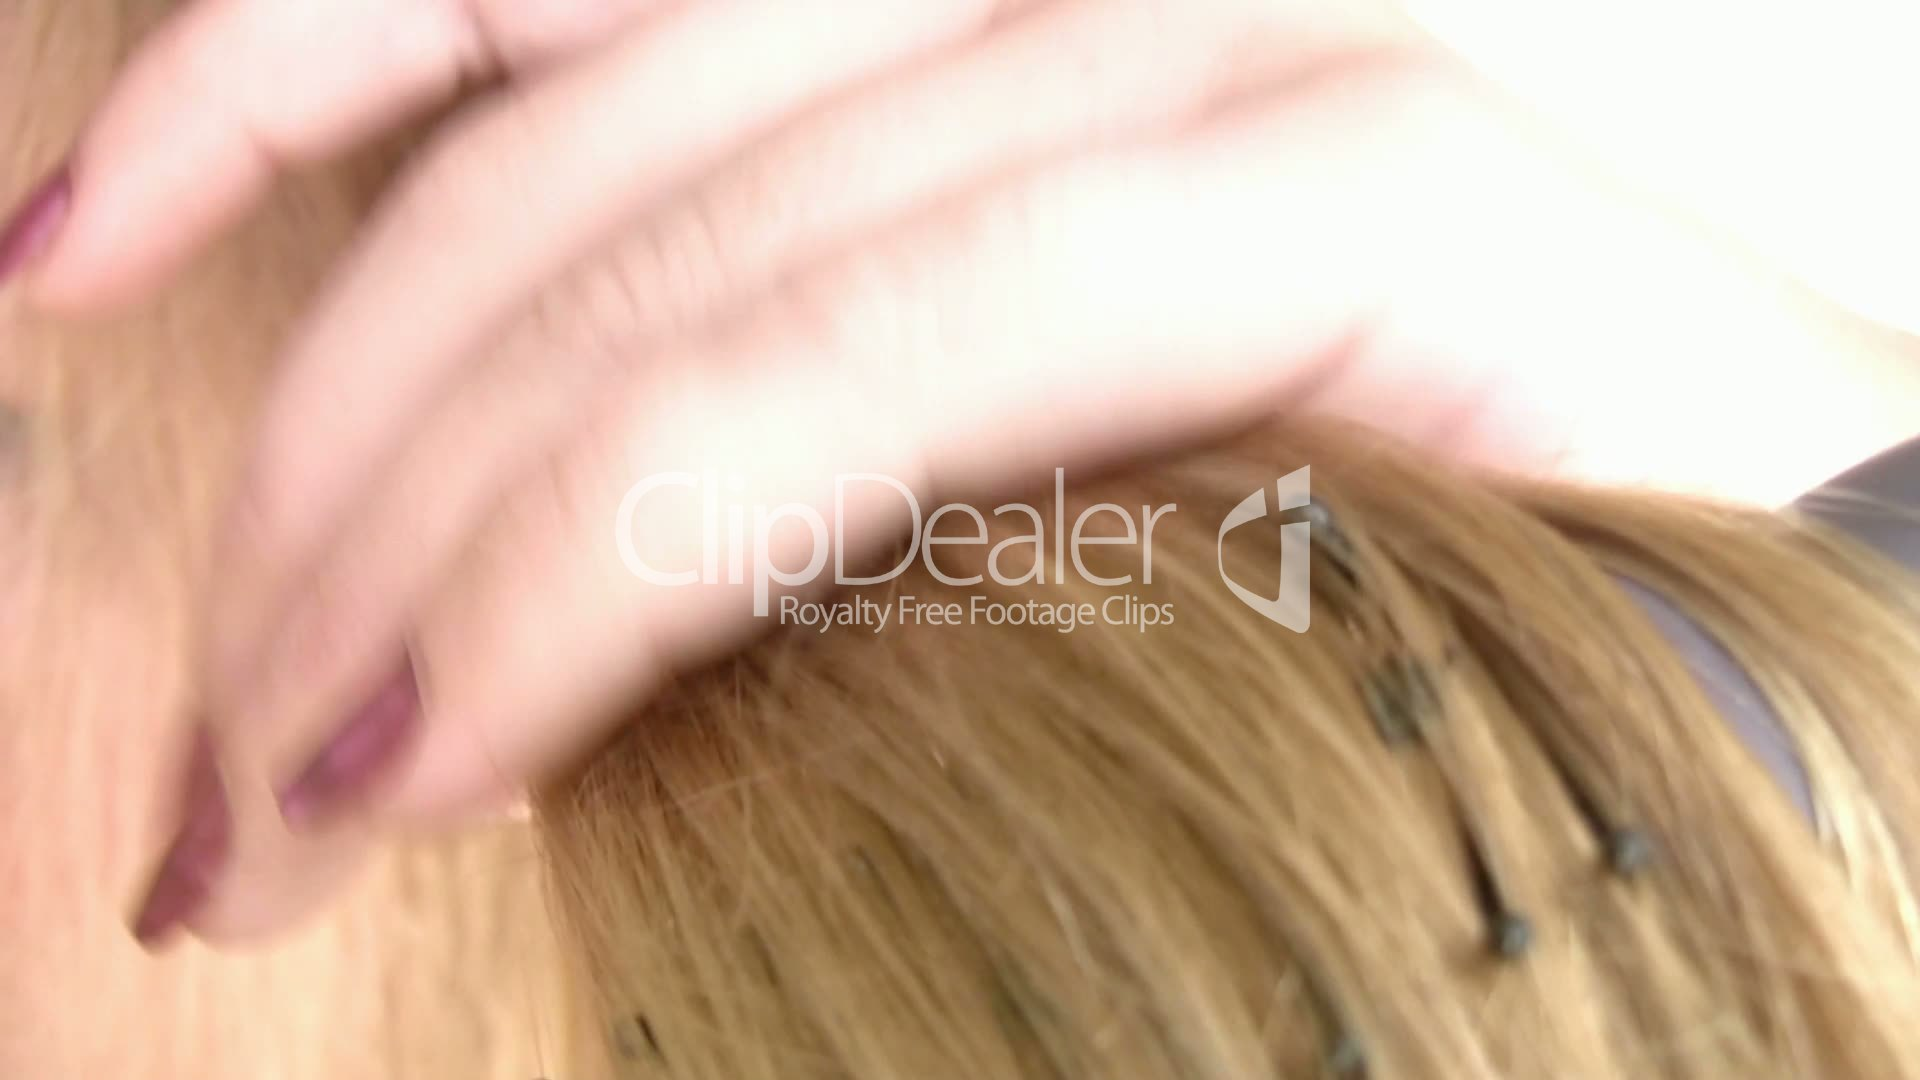 Combing her soft hairy pussy with my fingers